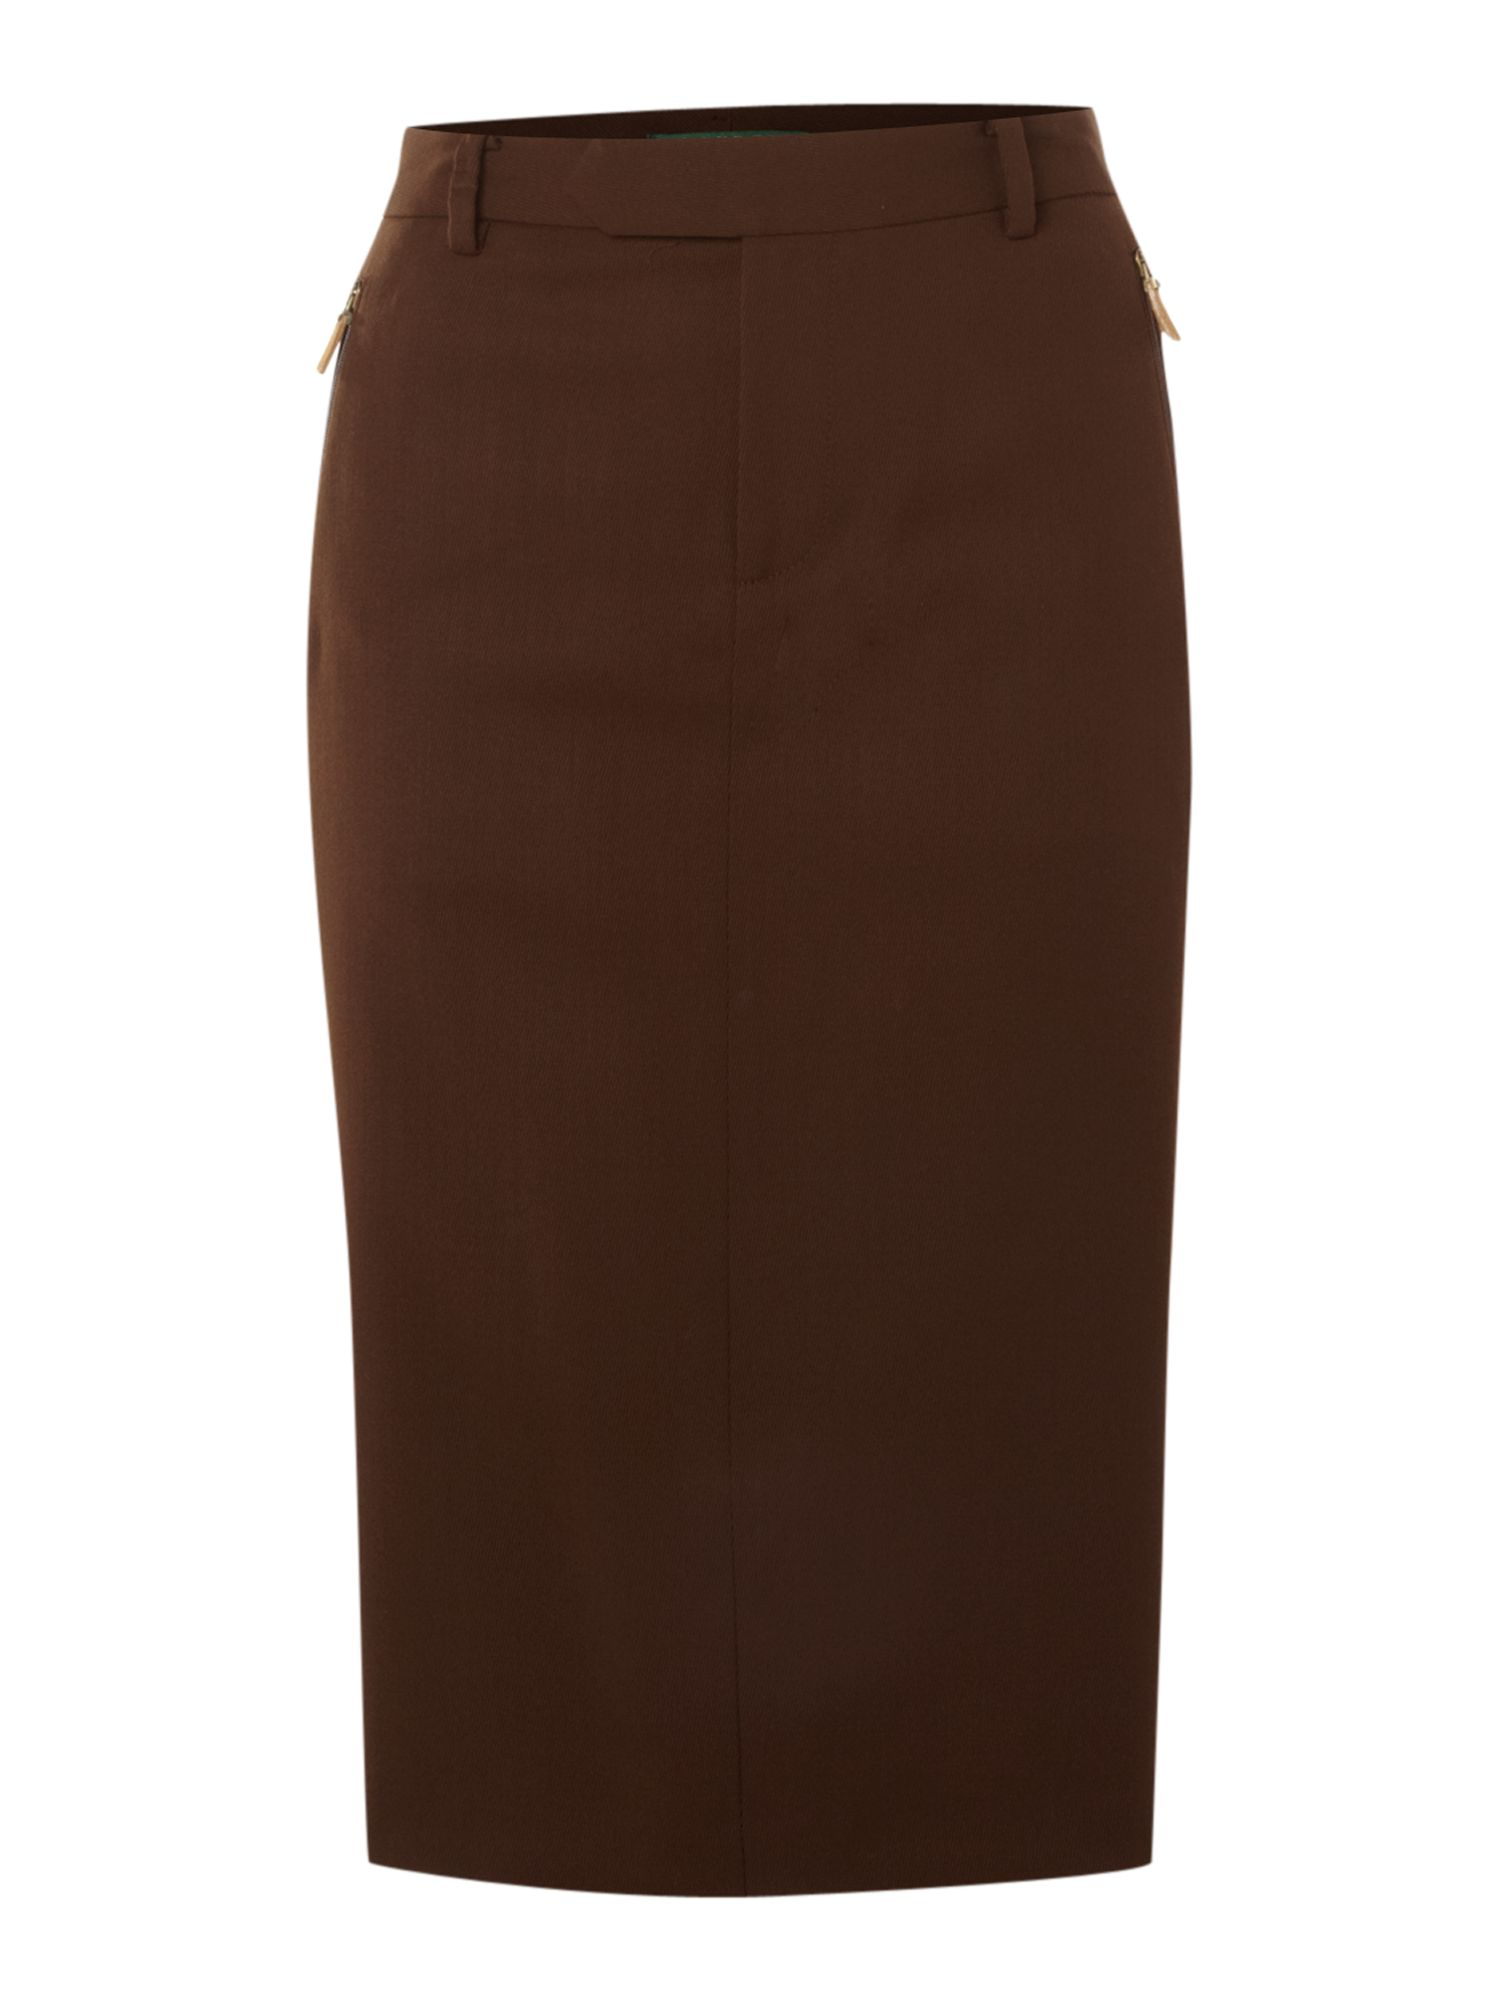 Brown Pencil Skirt - Skirts